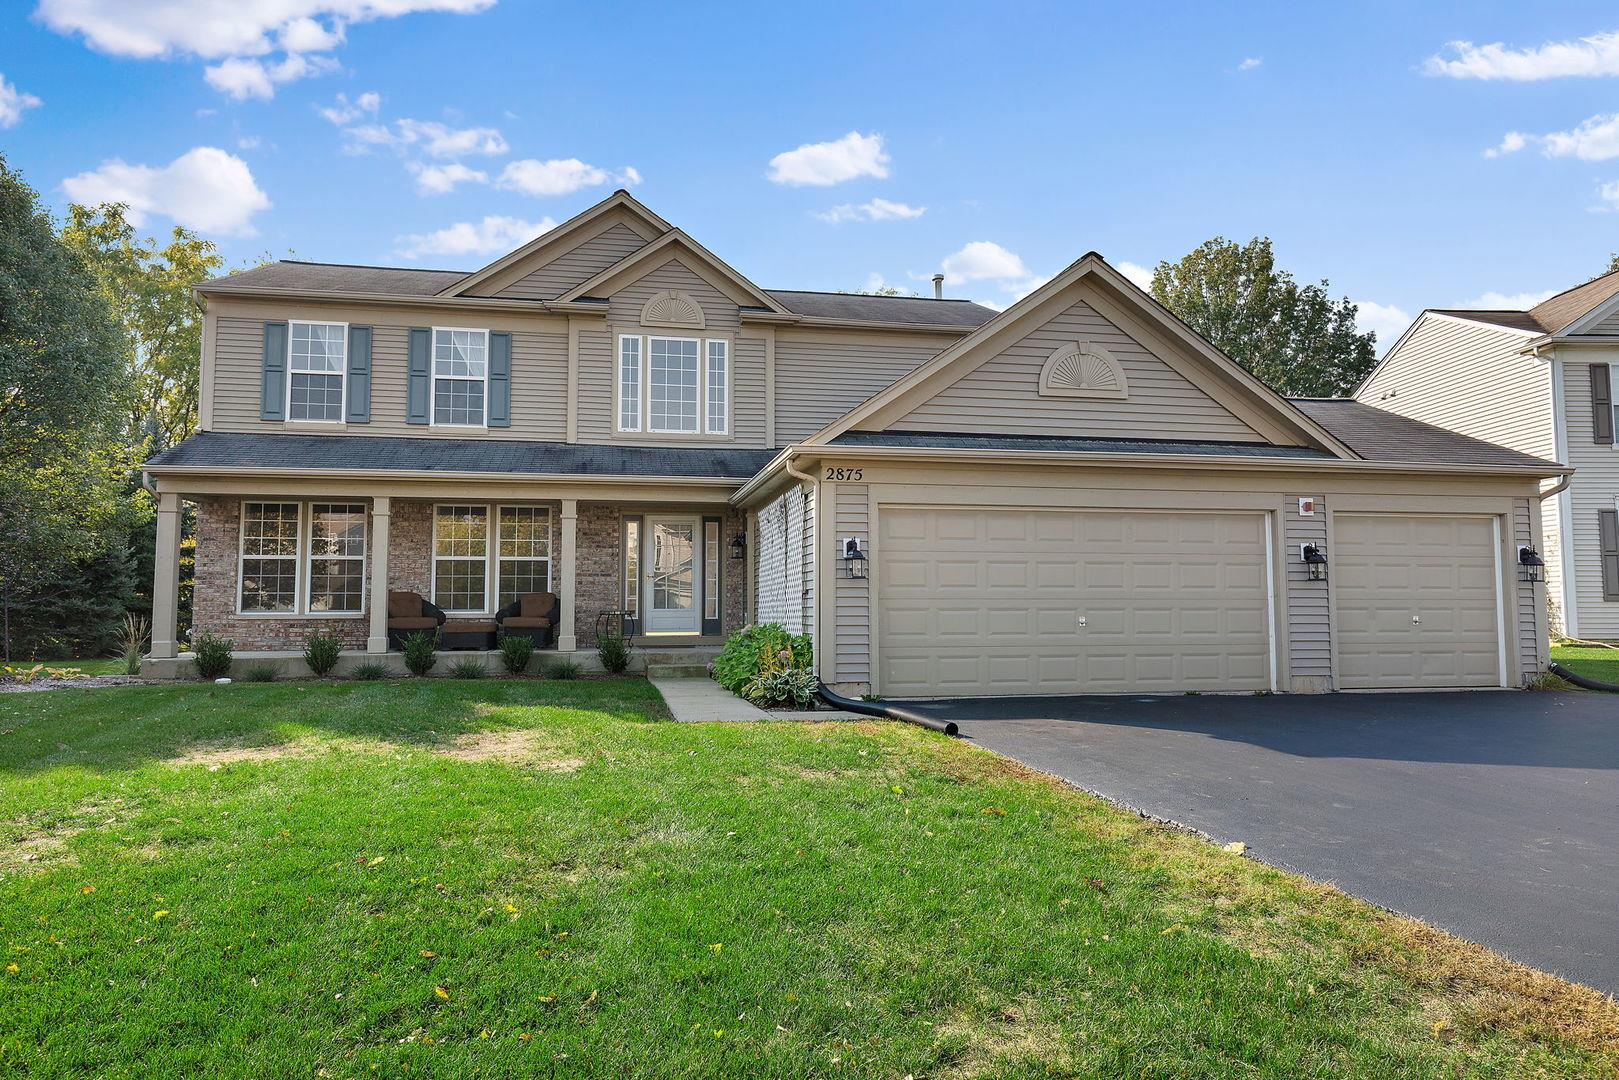 2875 Dartmouth Lane, West Dundee, IL 60118 - #: 10904541